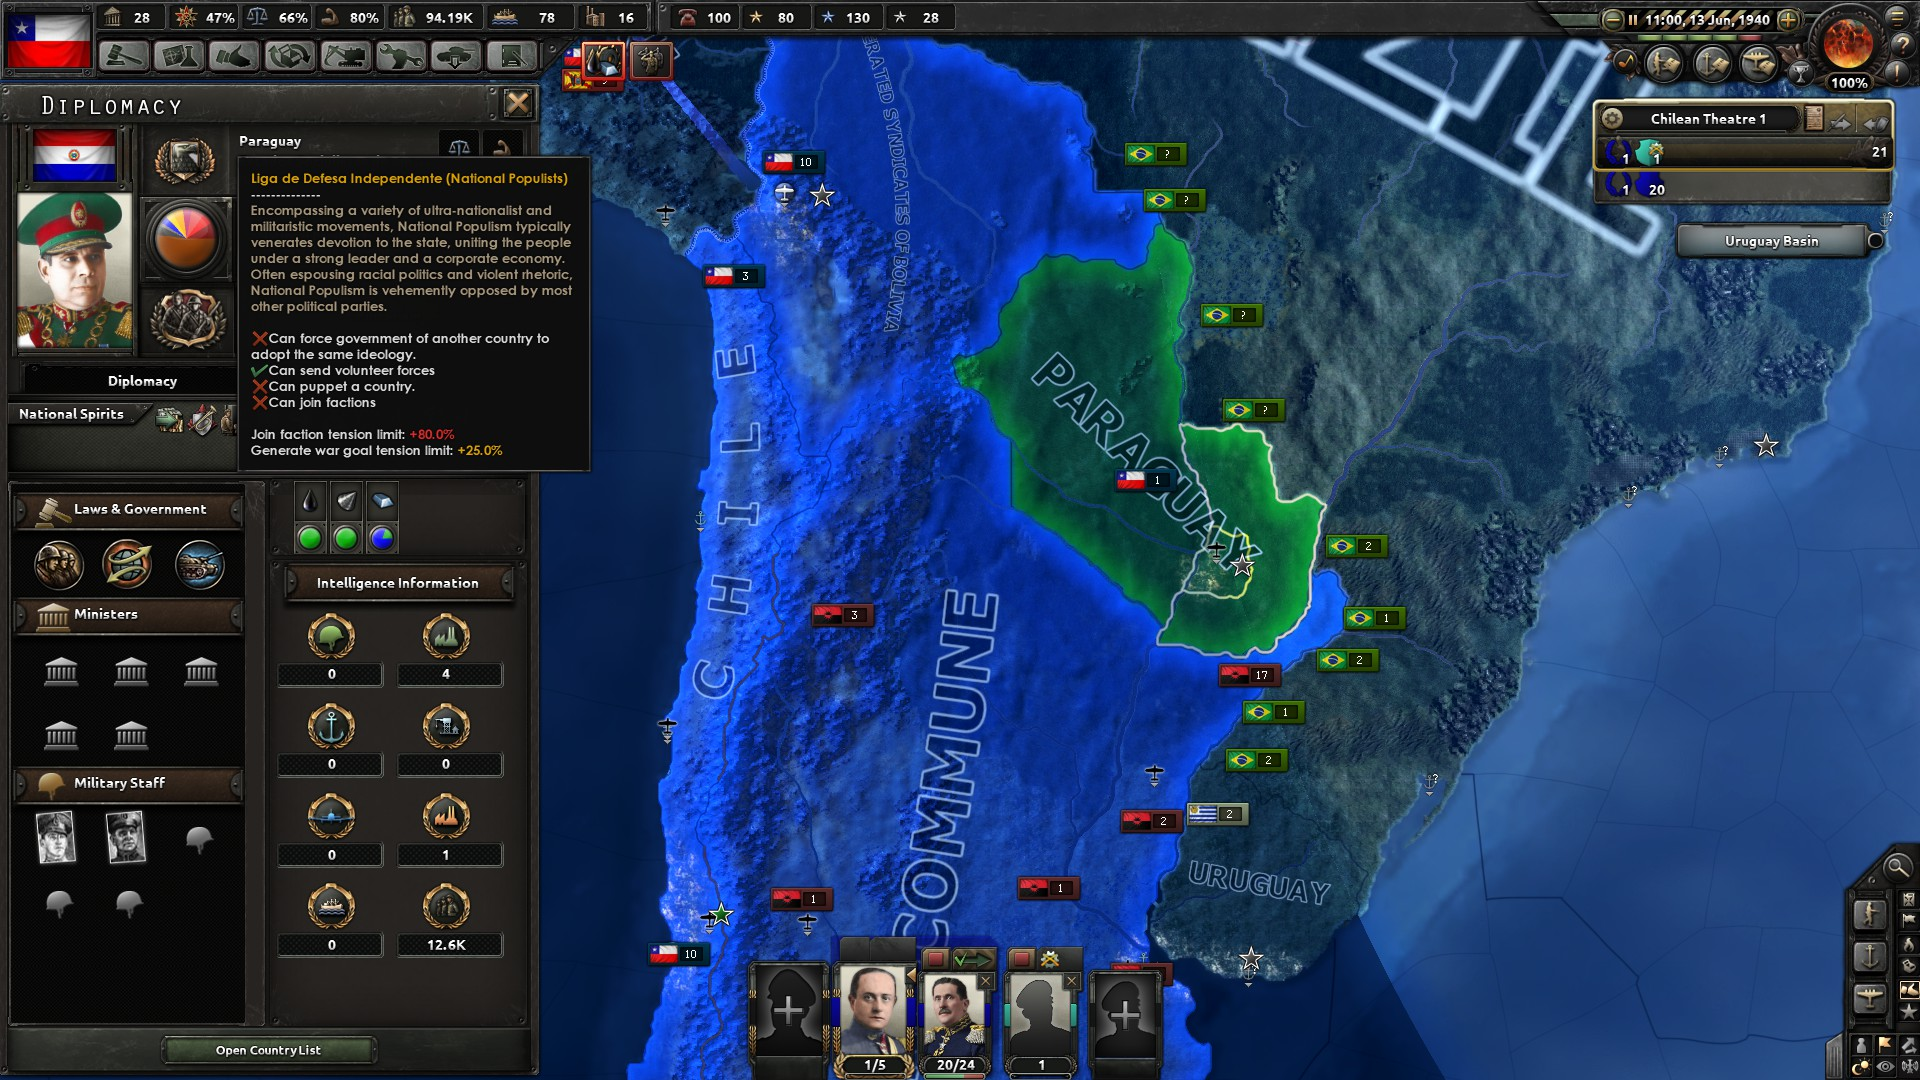 Paraguay has a NatPop coup while being a Syndie puppet - PAR